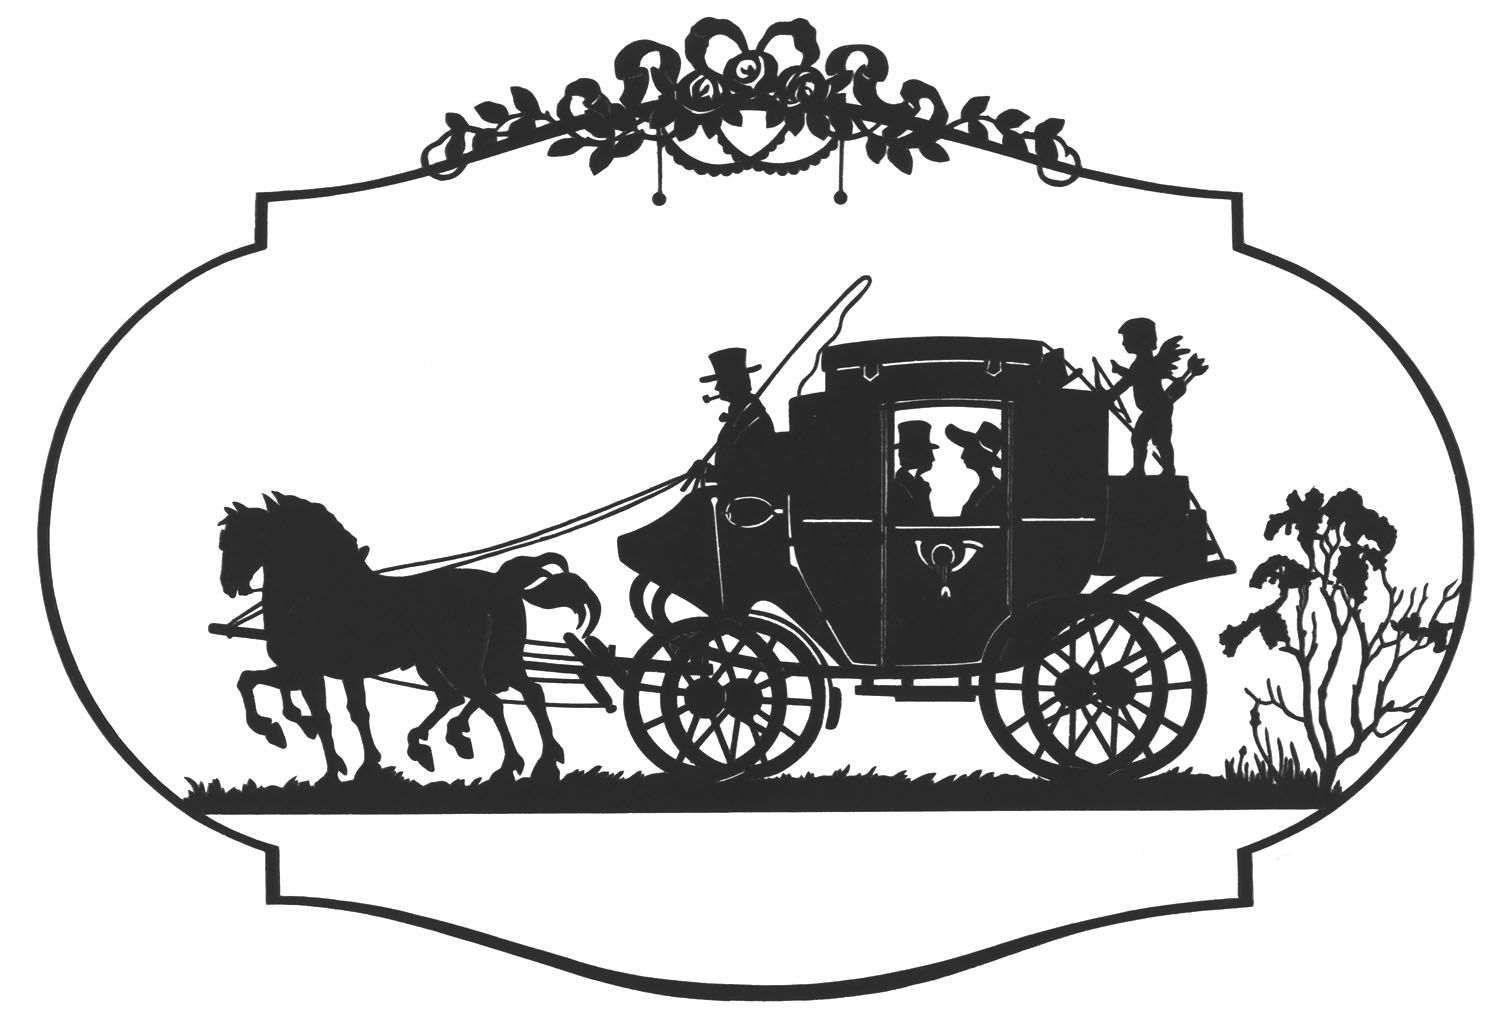 Horse drawn wagon clipart.